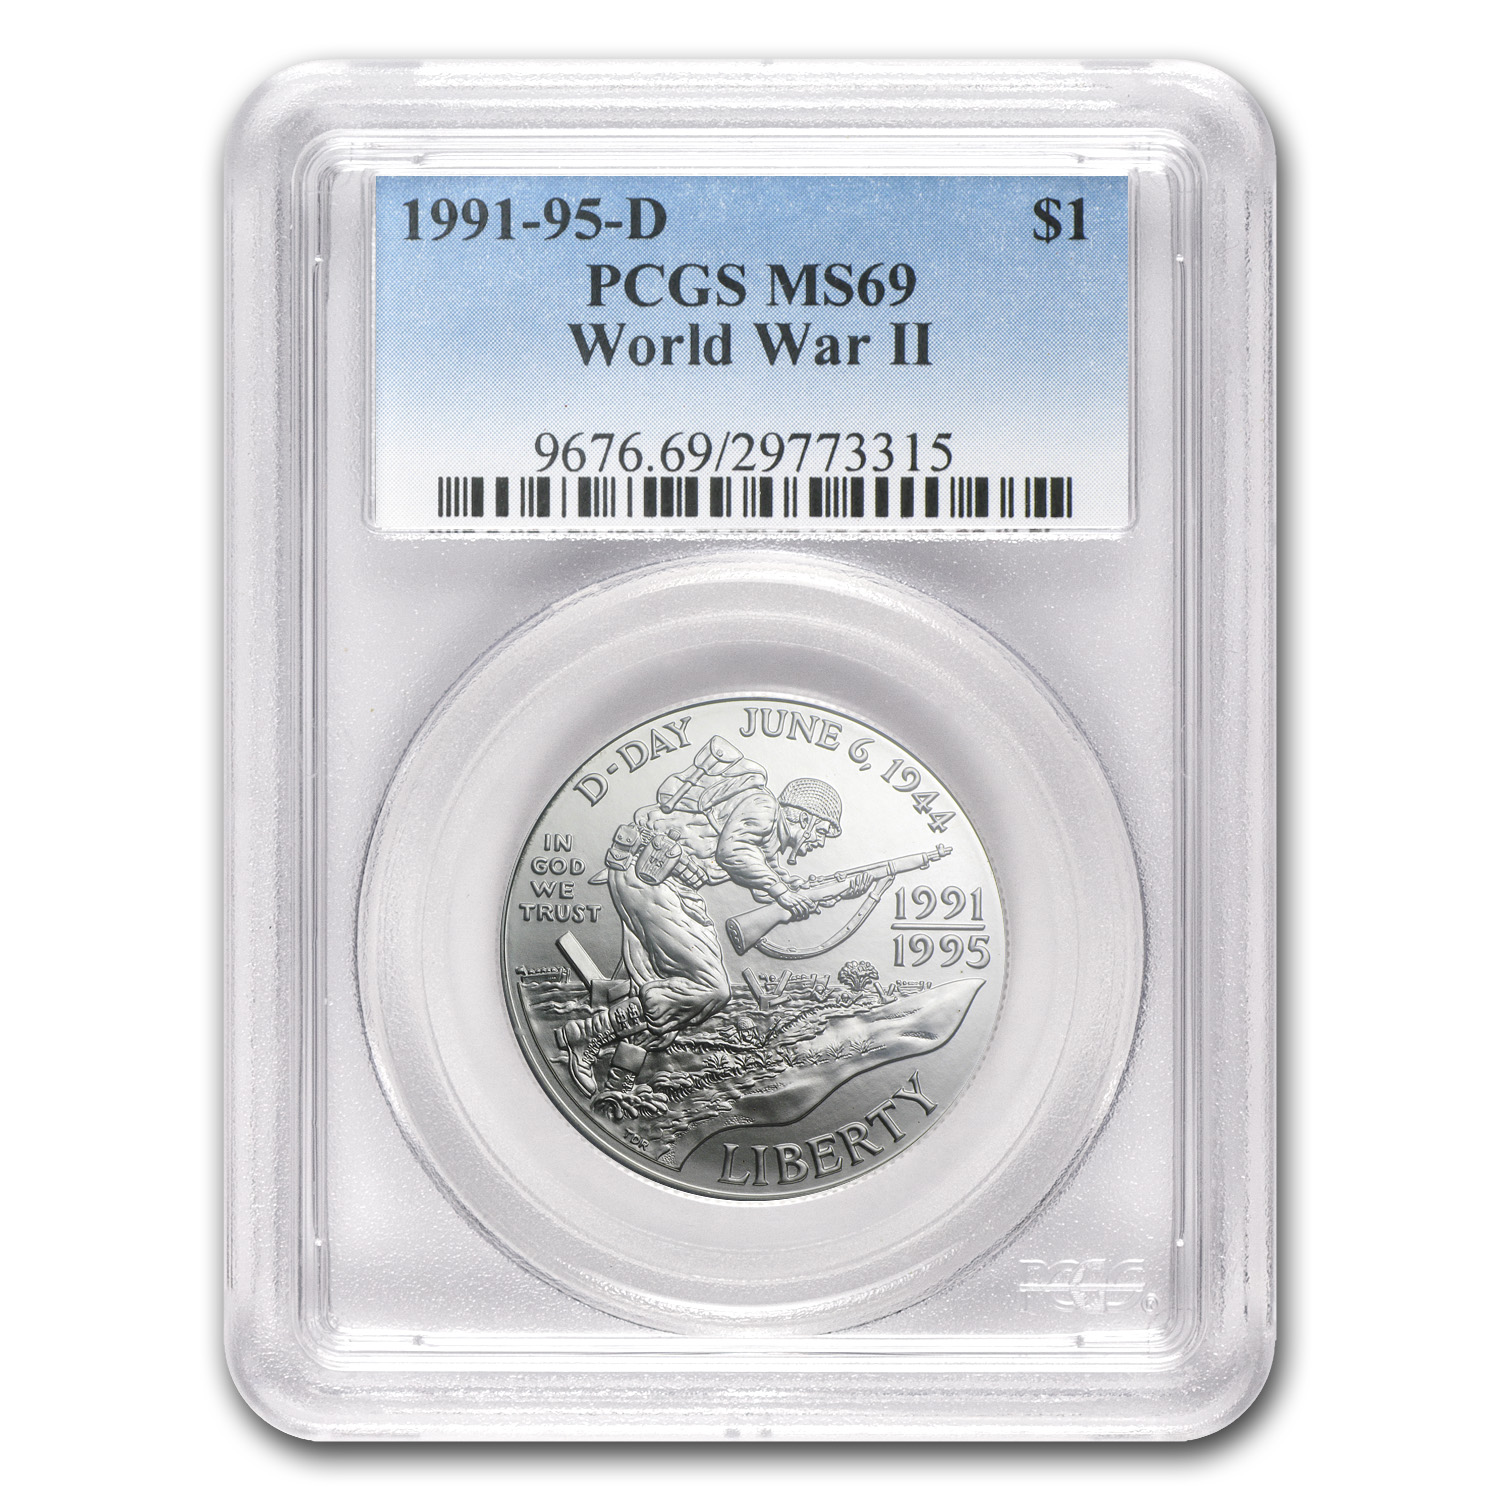 1993-D World War II $1 Silver Commemorative - MS-69 PCGS